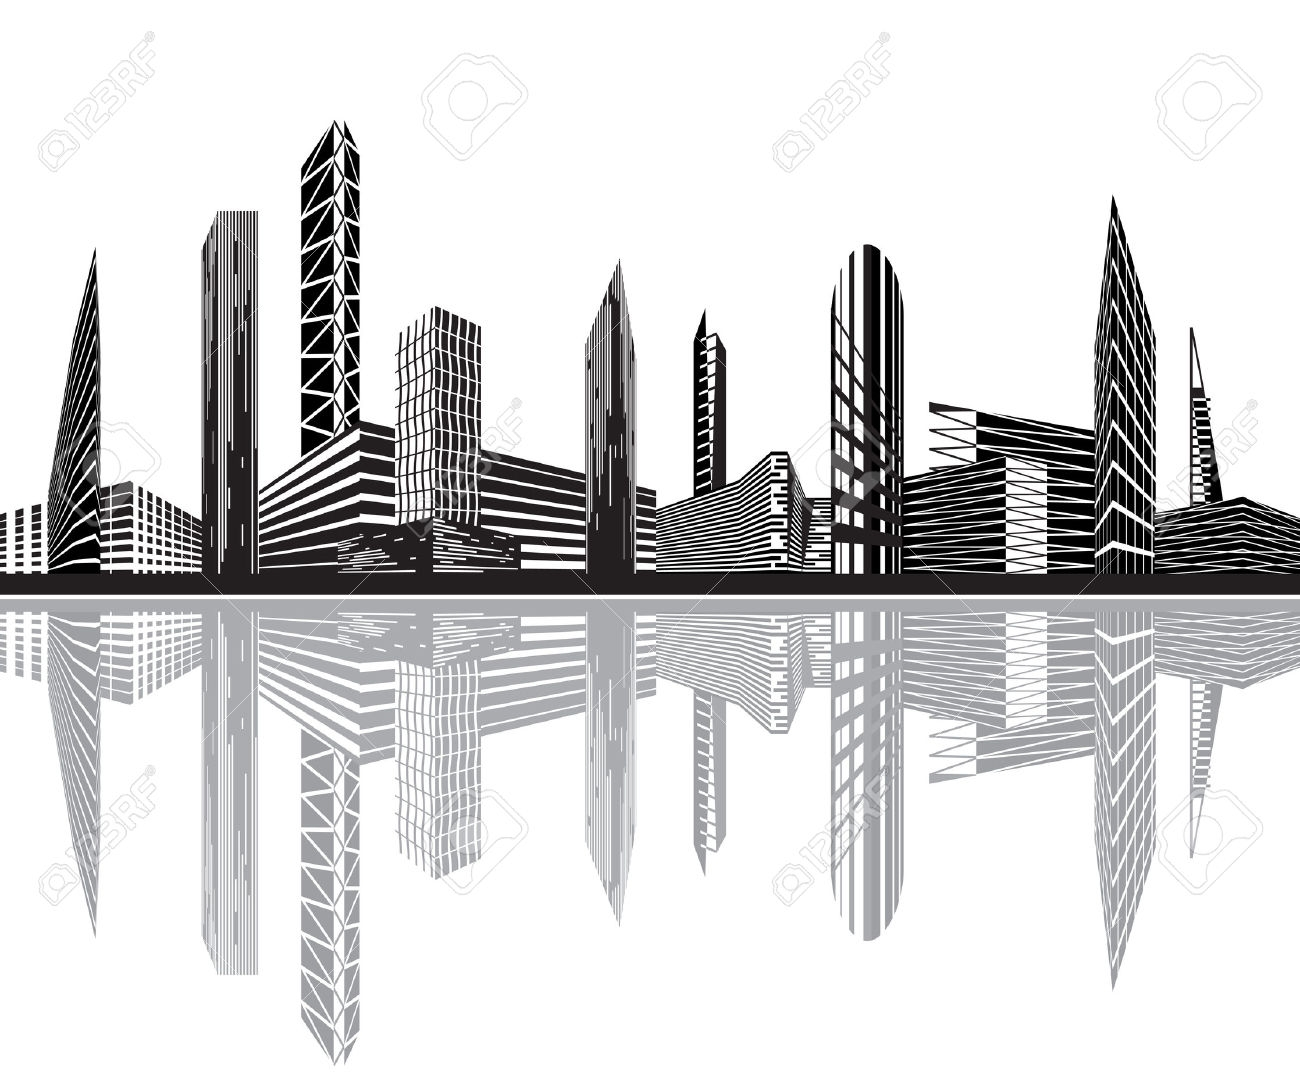 Whites city clipart - Clipground